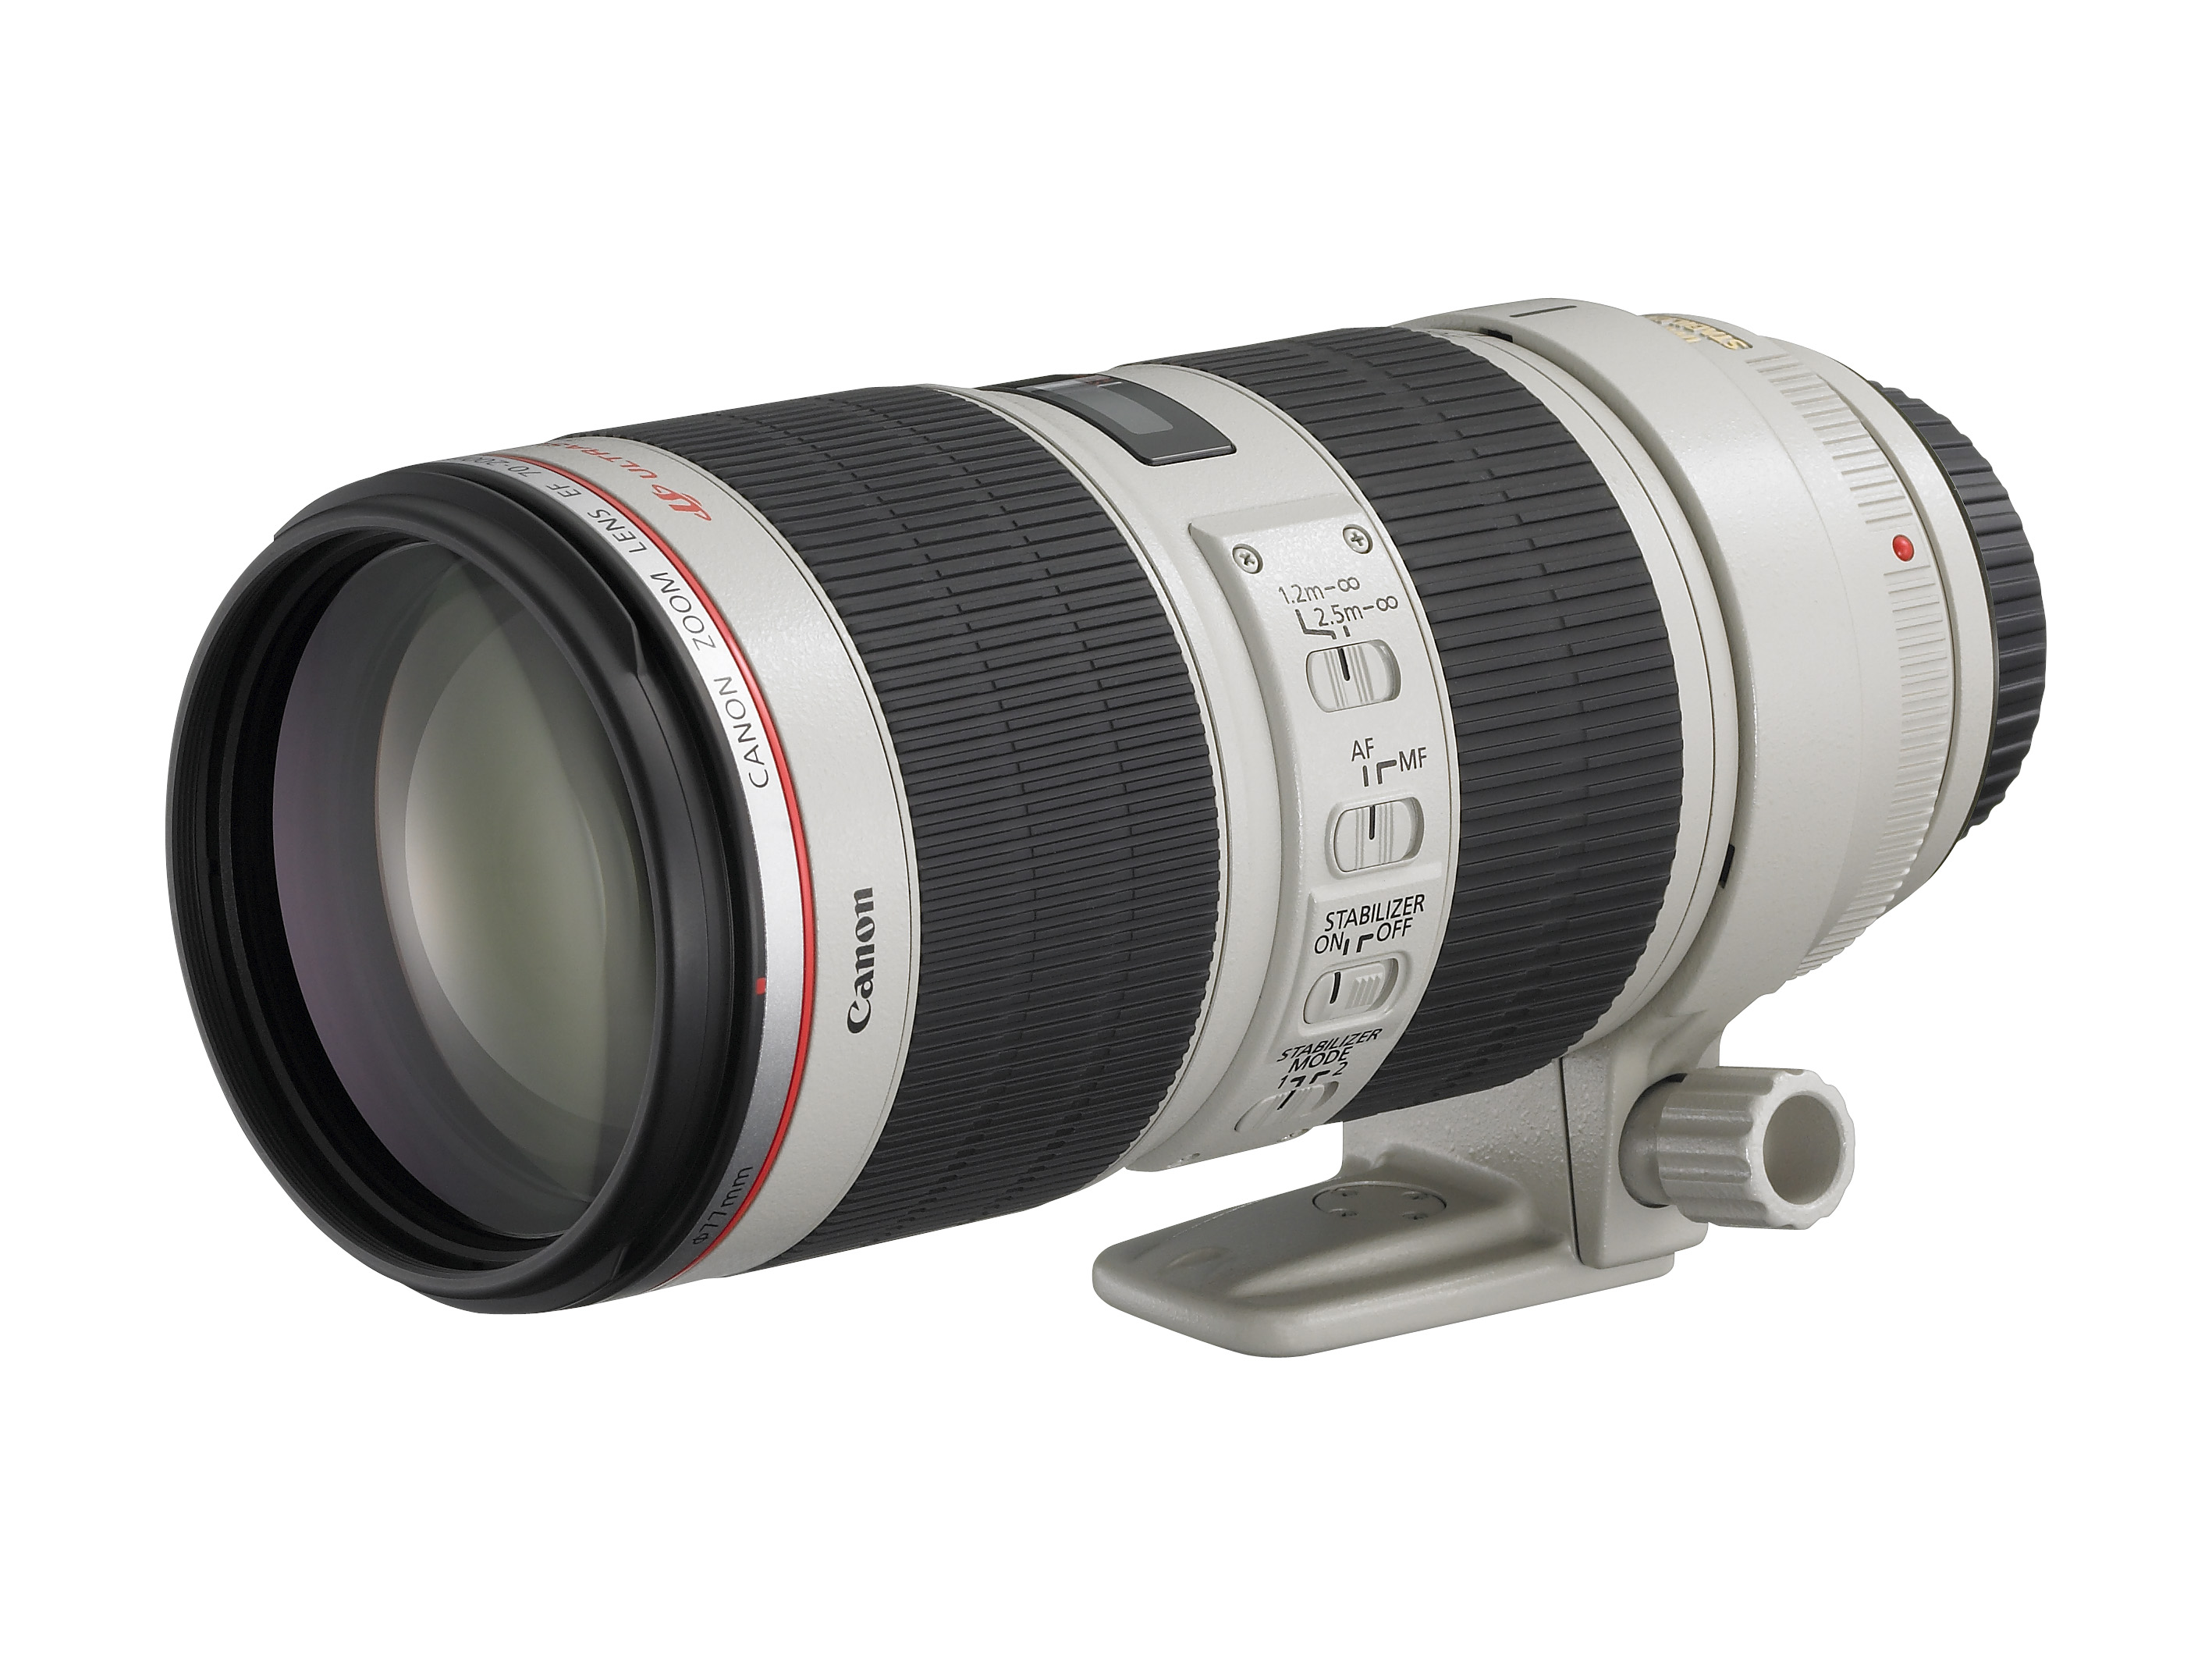 EF 70-200mm f2.8L IS II USM (Foto: Canon)